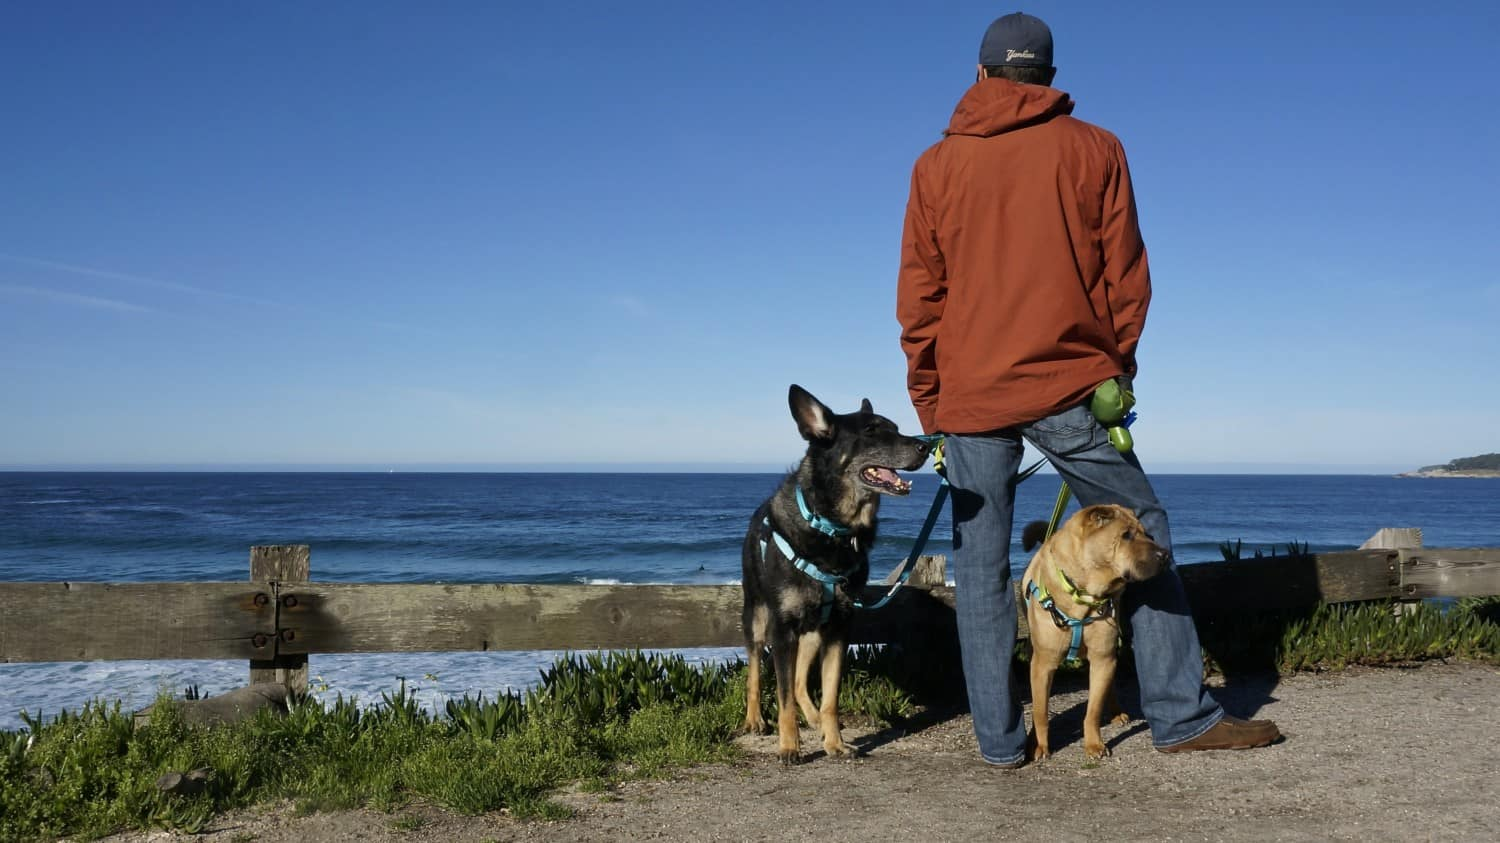 California's Top Pet Friendly Attraction: Carmel Beach | GoPetFriendly.com